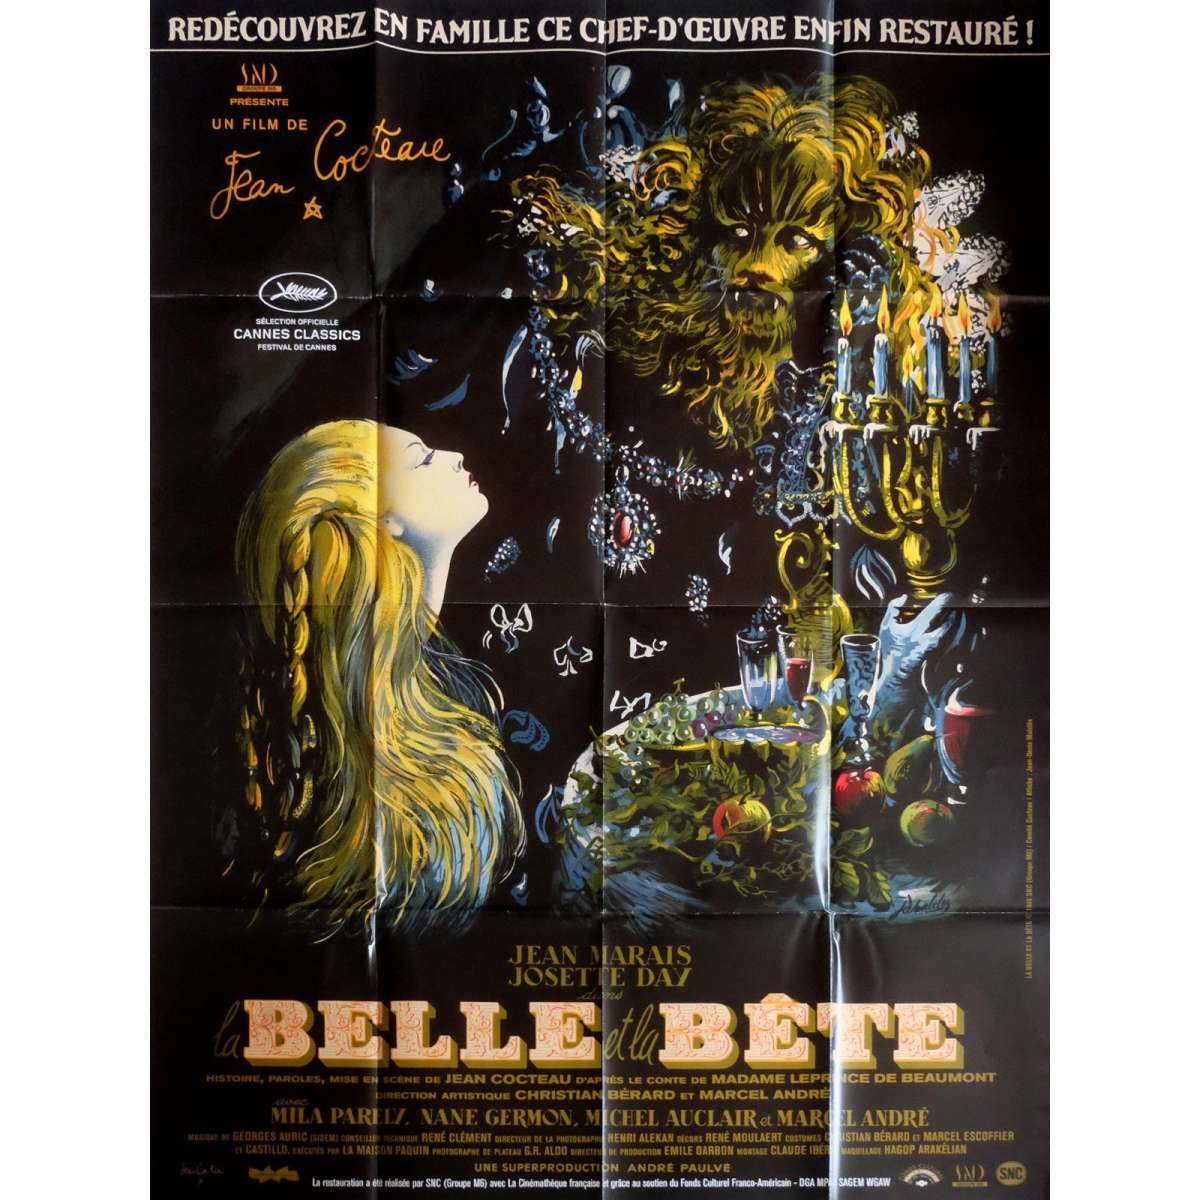 a review of the film la belle et la bete When i initially endeavored to cover la belle et la bête (2014) i  may also be  similarly uninitiated) the film synopsis which will adequately set.